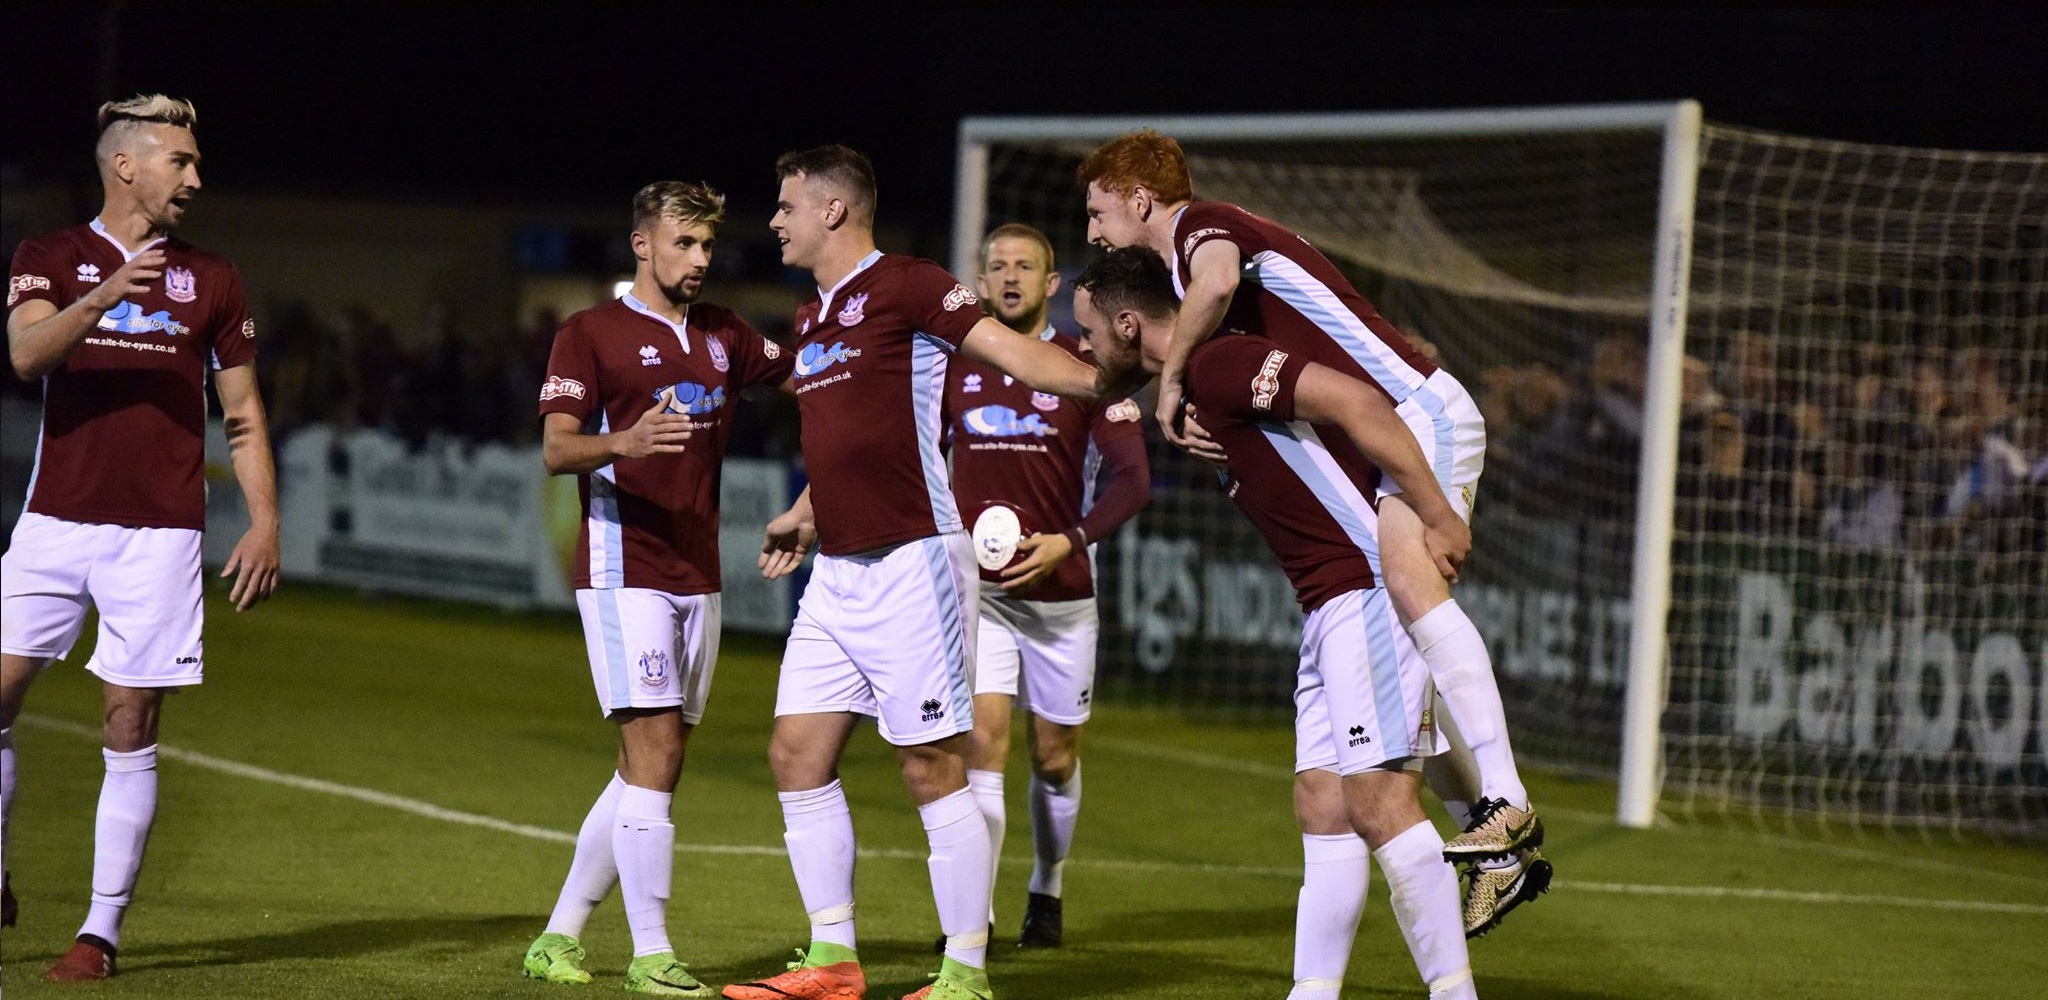 South Shields vs Ossett Albion